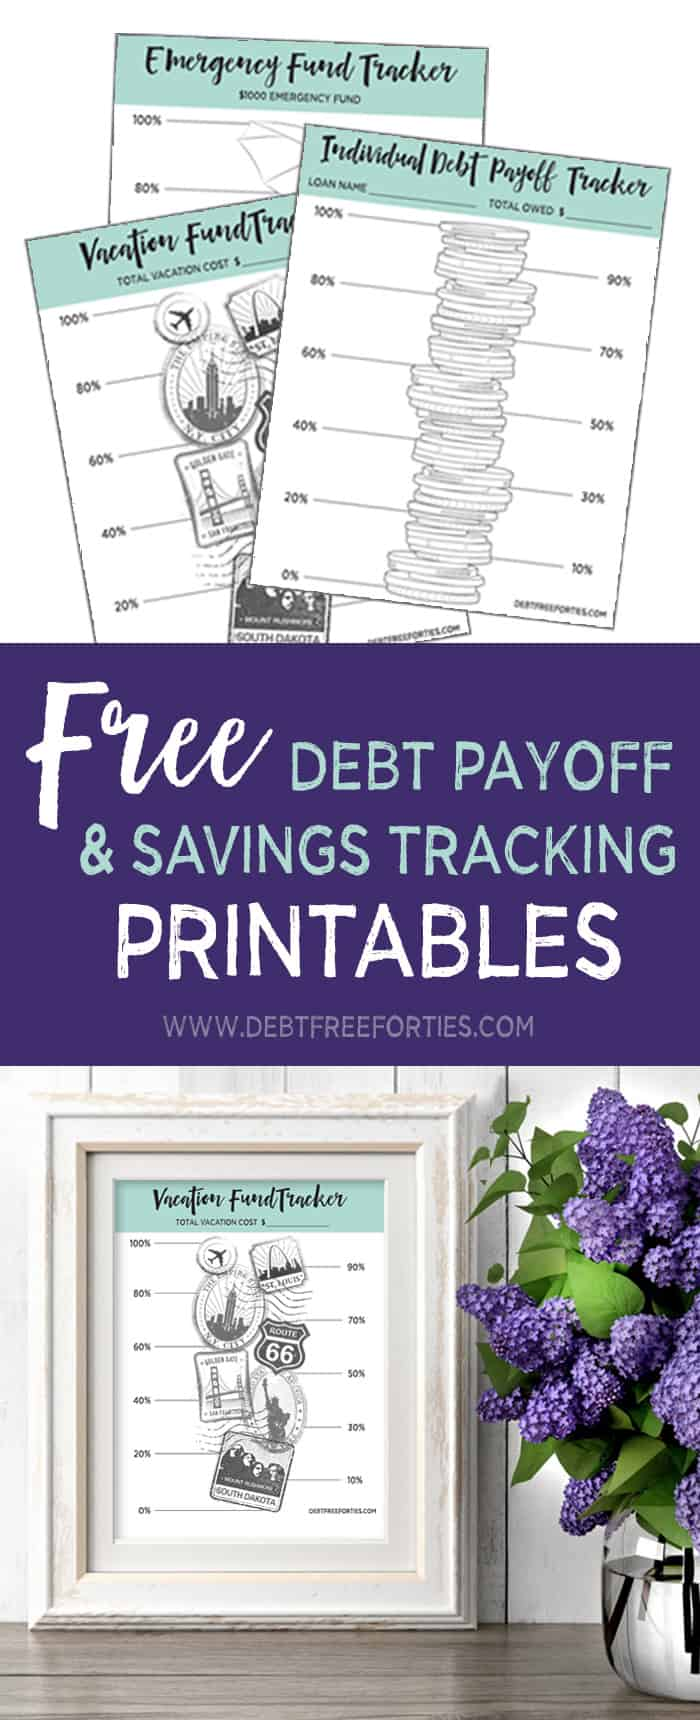 Free Debt Repayment Printables to track your repayment progress #debt #debtrepayment #finances #printables